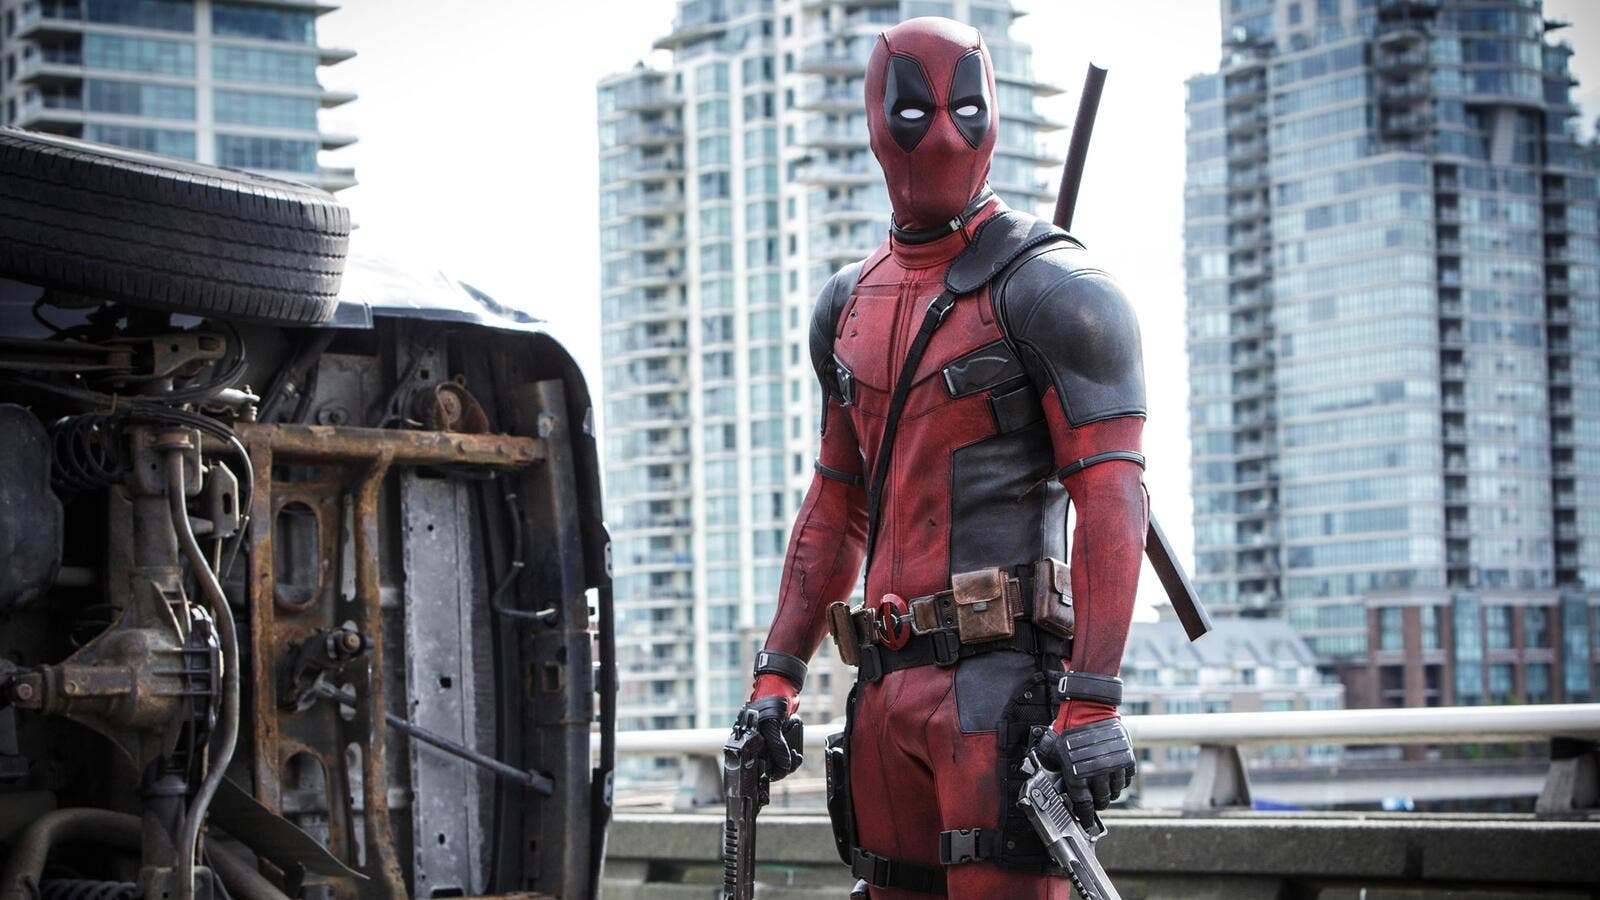 Film buffs are abuzz with Deadpool around the world. (Foxmovies.com)